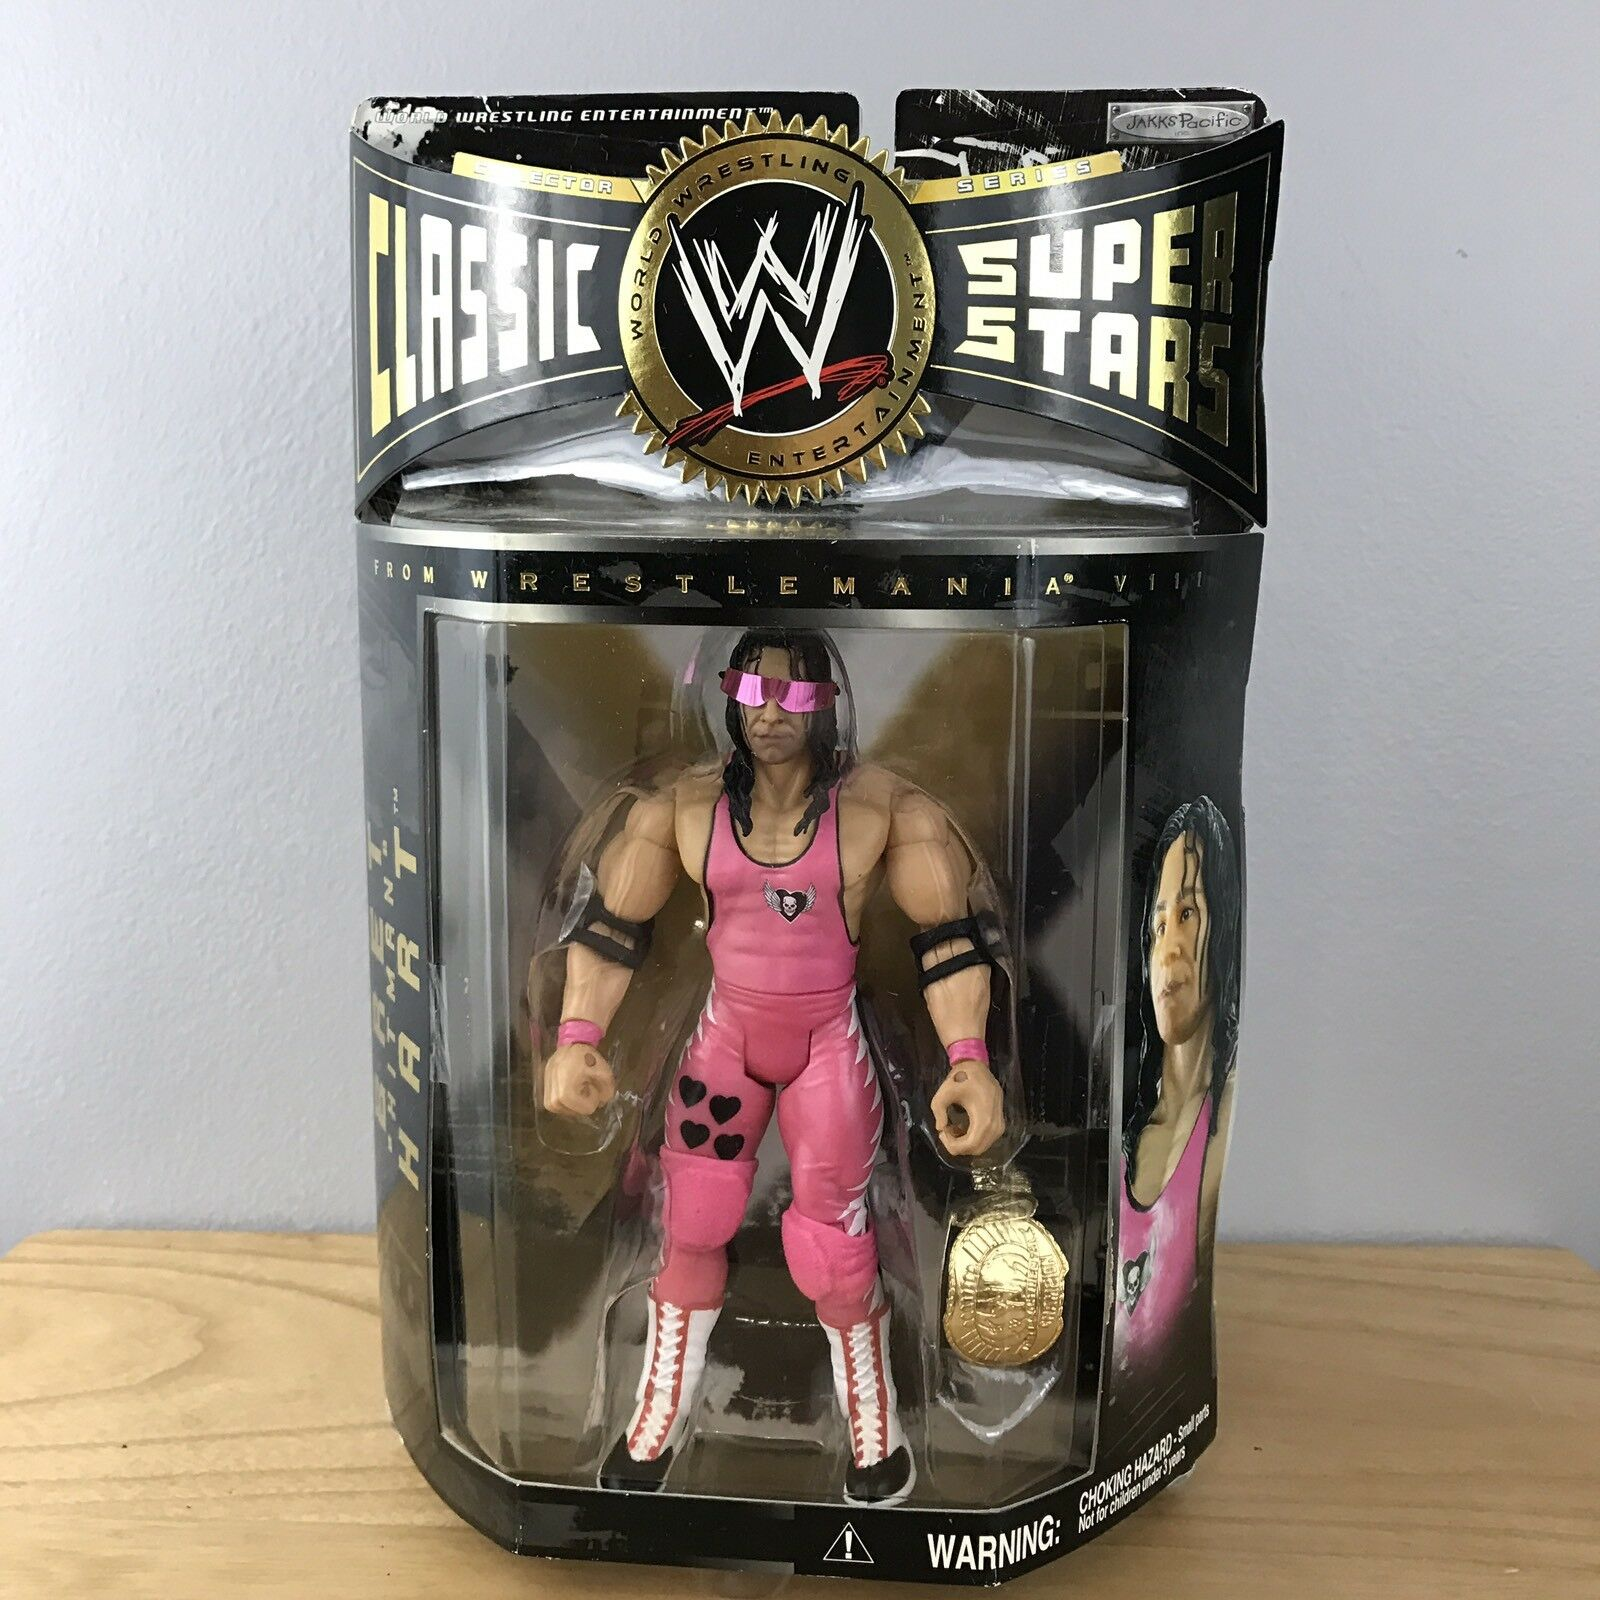 WWE WWF Classic Superstars Bret Hart Series 3 Hitman Jakks Wrestling Figure